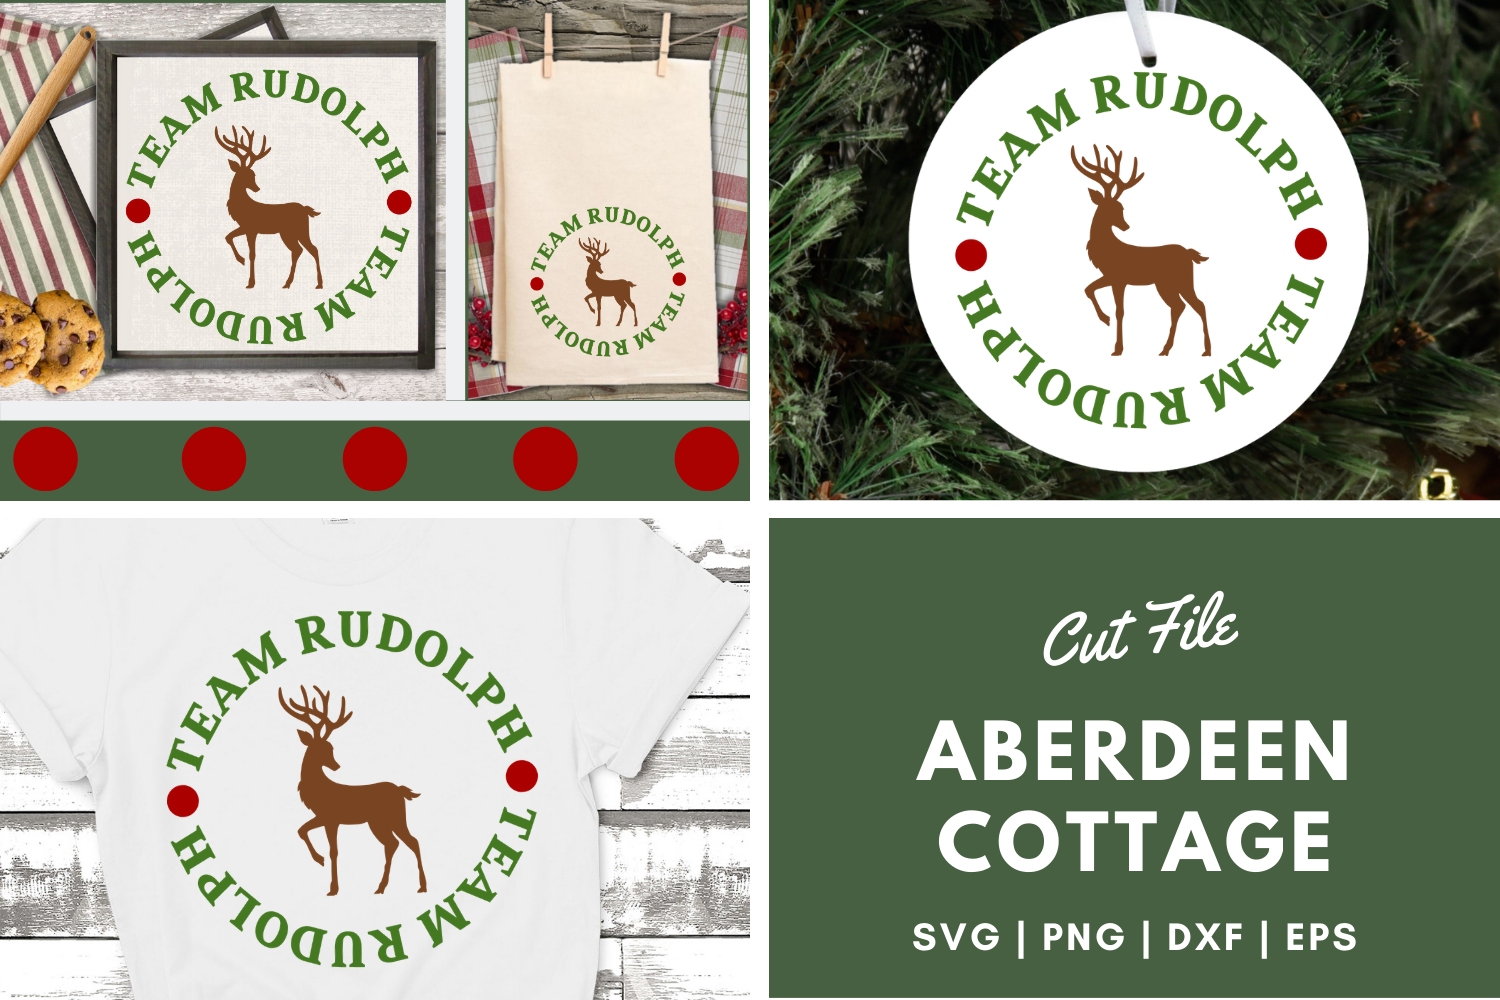 Team Rudolph - Christmas SVG | PNG | DXF | EPS example image 1